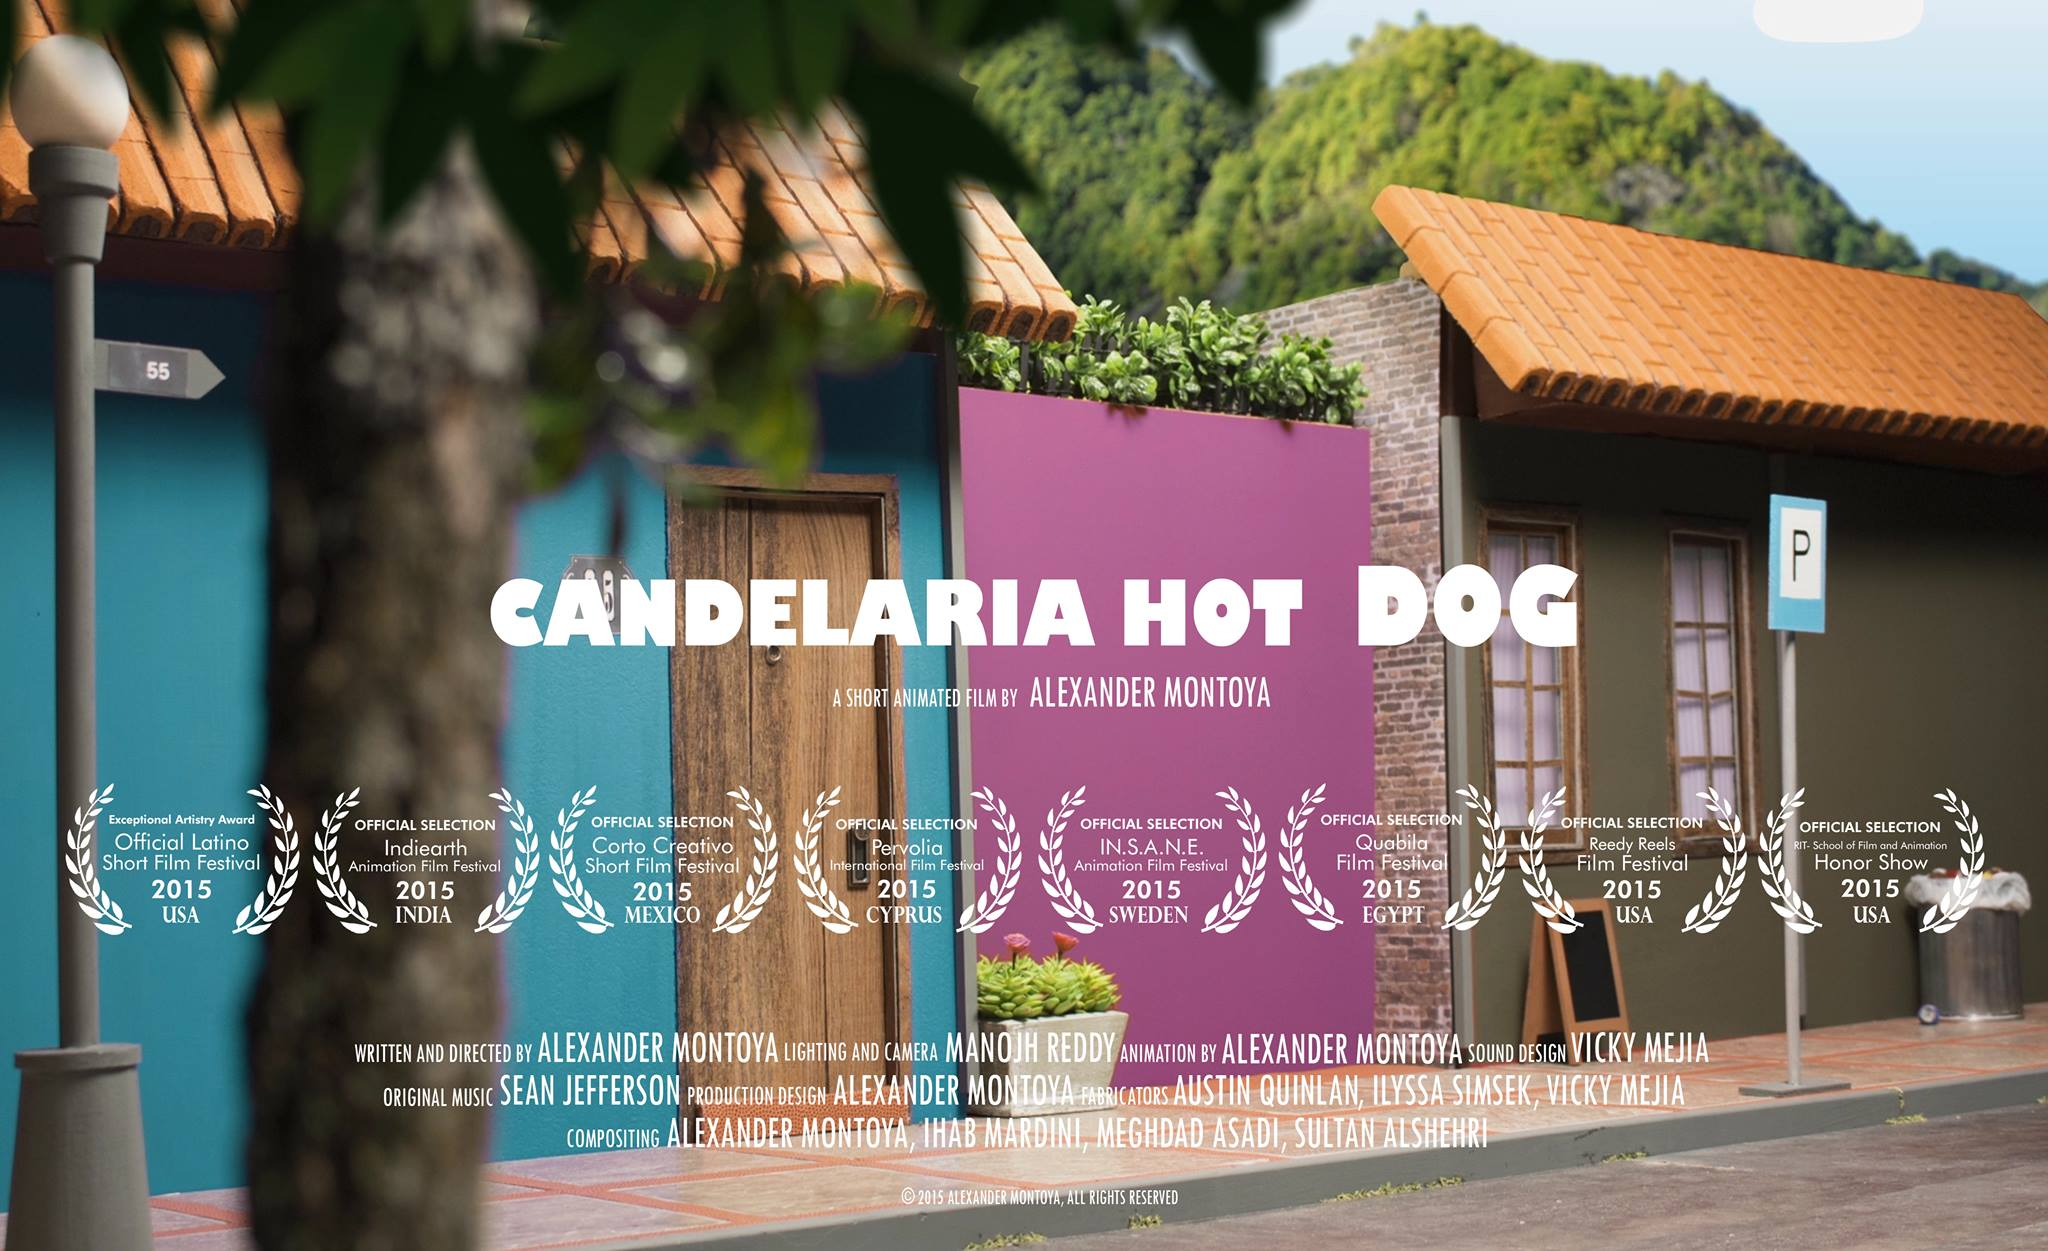 Candelaria hot dog